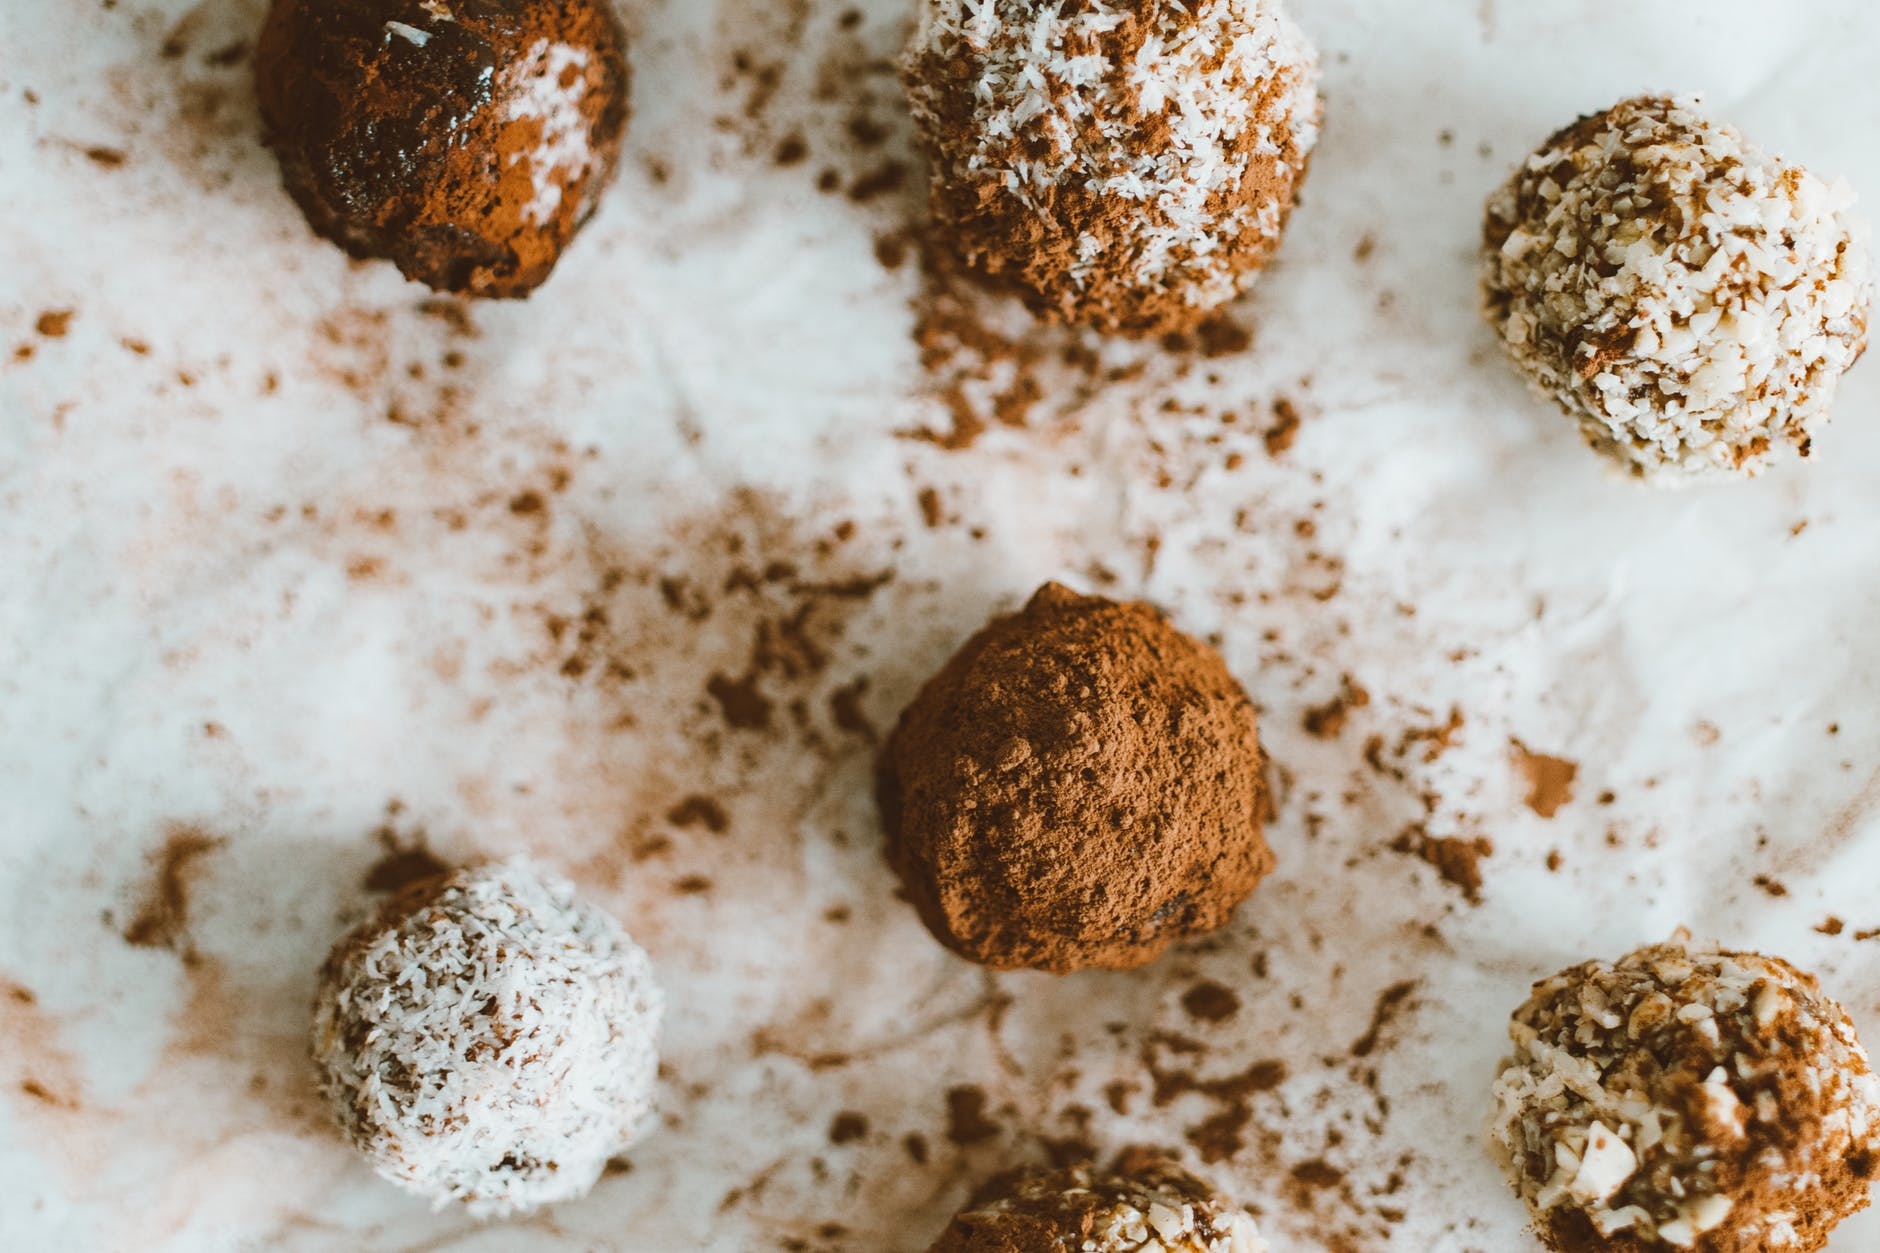 What Is a Truffle Chocolate? What Are the Types of Truffle?